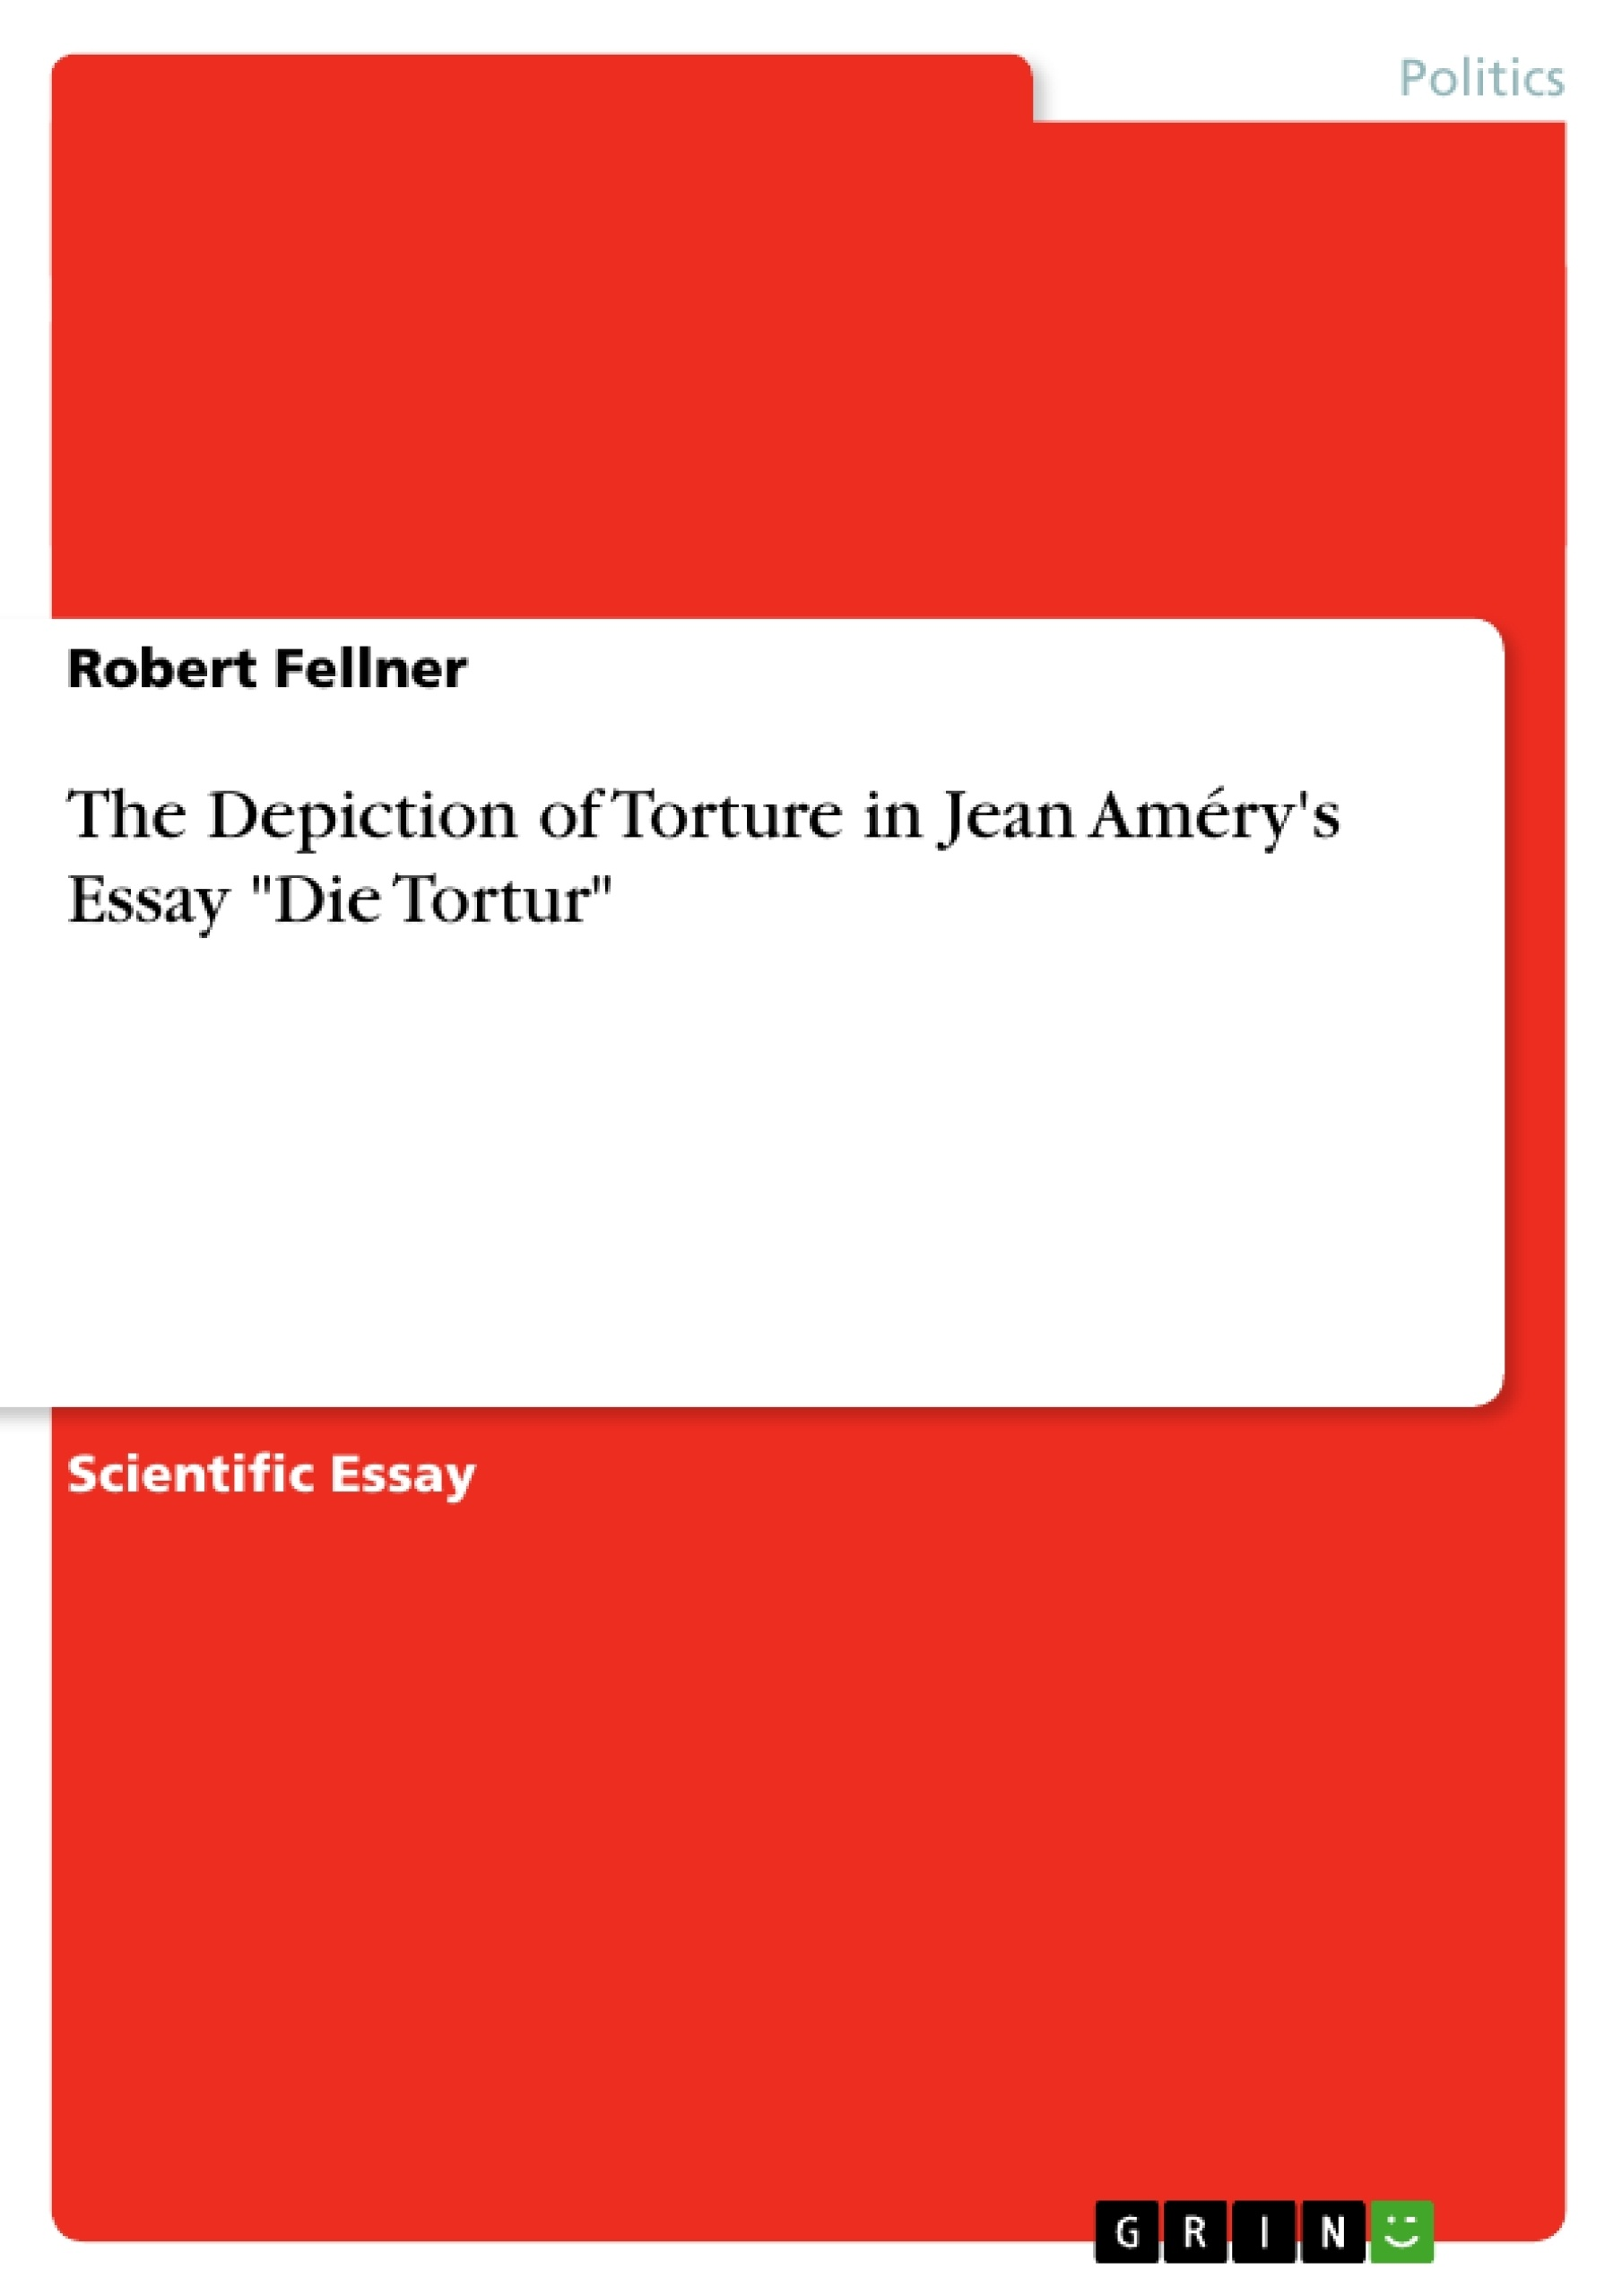 the depiction of torture in jean améry s essay die tortur the depiction of torture in jean améry s essay die tortur publish your master s thesis bachelor s thesis essay or term paper